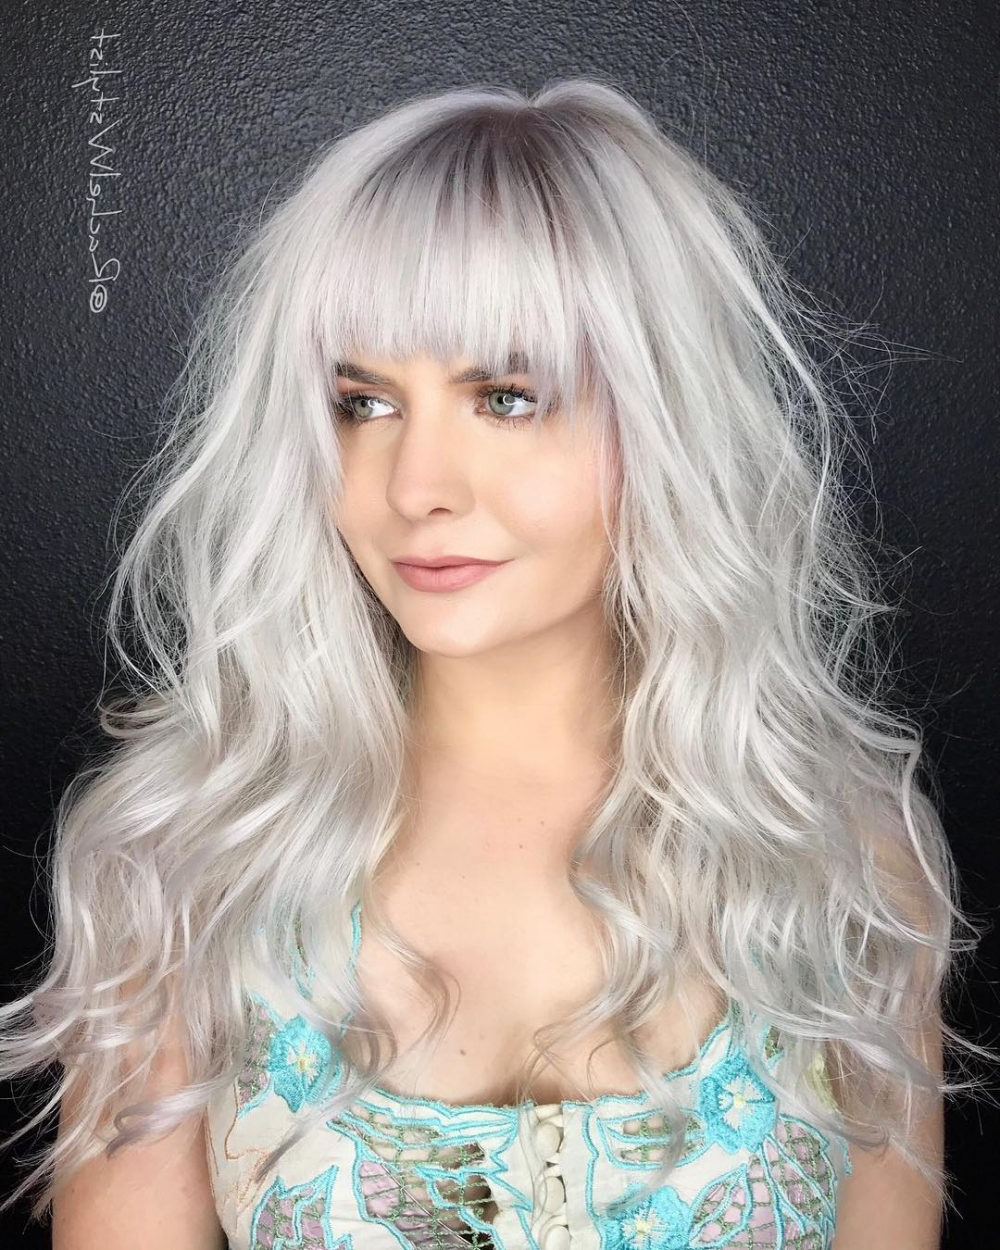 33 Most Flattering Hairstyles For Round Faces Of 2019 Regarding Classic Asymmetrical Hairstyles For Round Face Types (View 16 of 20)